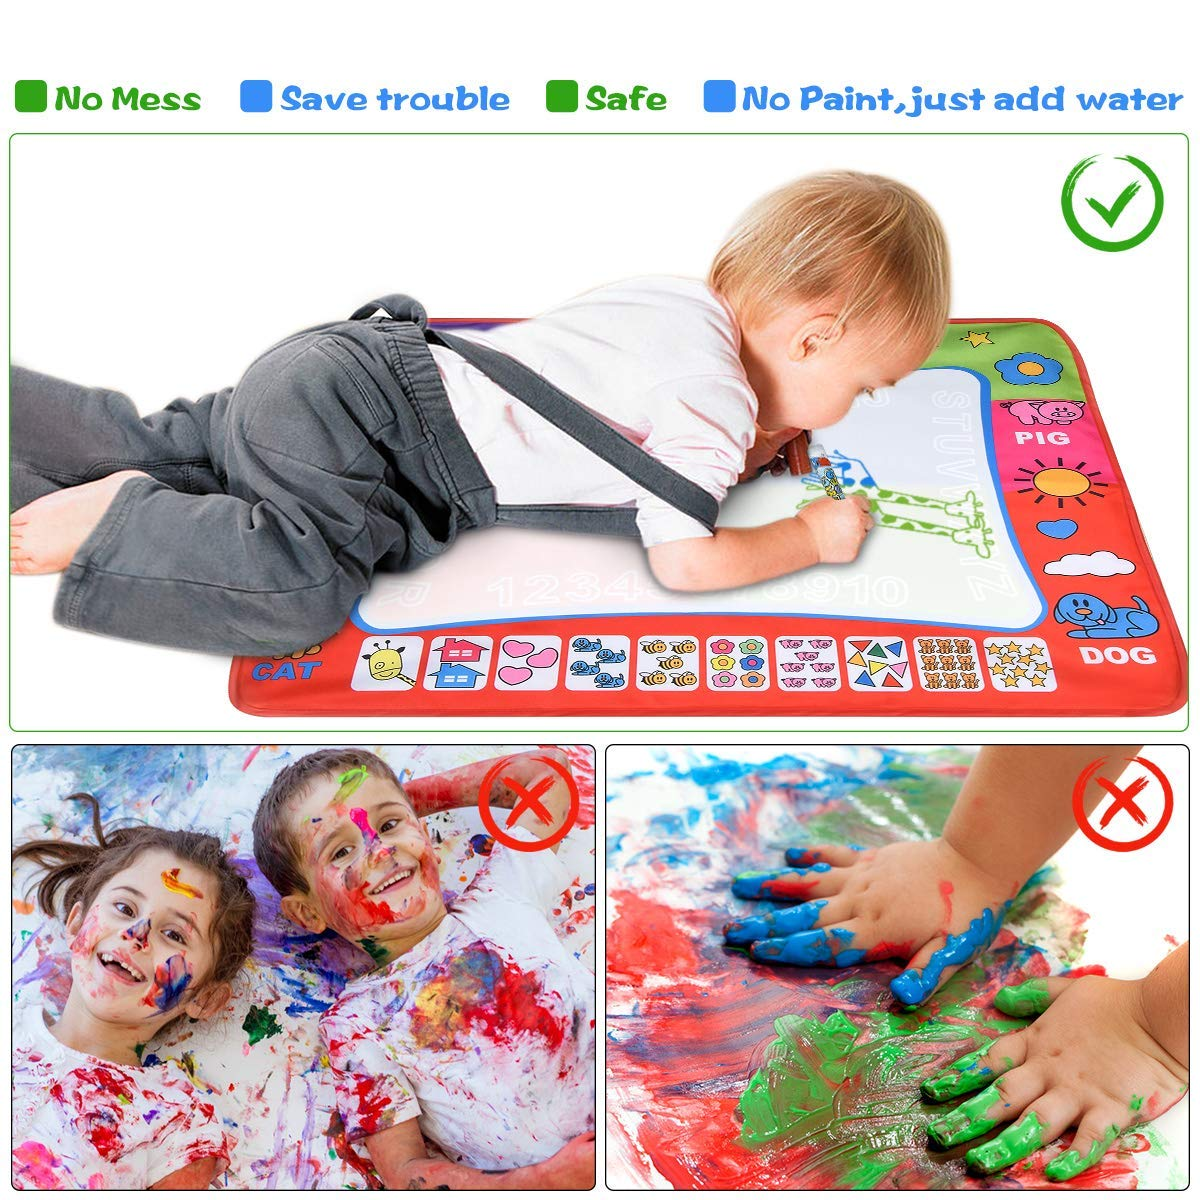 Doodle Mat Color Water Drawing Painting Writing Mat Pad Board 4 Pen 4 Color Develop Intelligence Learning Toy Gift for Boys Girls Age 2 3 4 Year Old 32x24in Folded with Color Box Can Take Outside